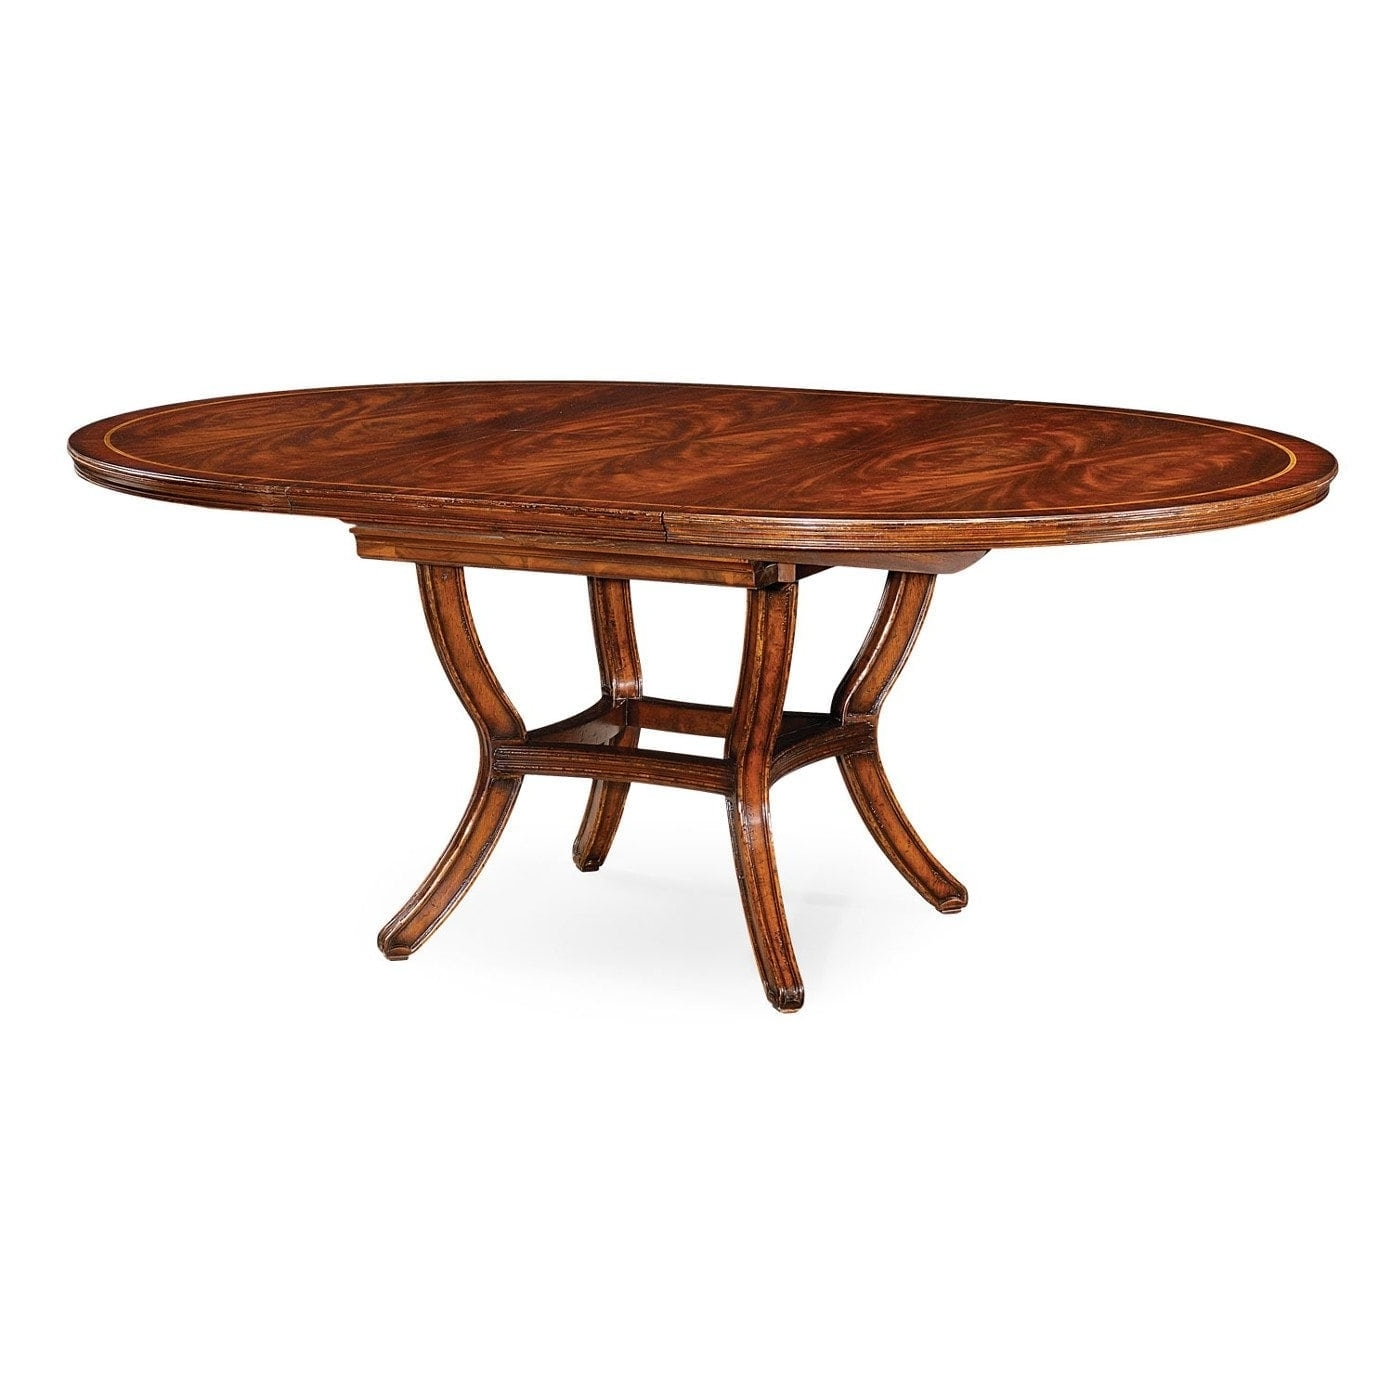 Round Dining Tables Extends To Oval For Favorite 54 Inch Round To Oval Table, Extends With Self Storing Leaf (View 25 of 25)